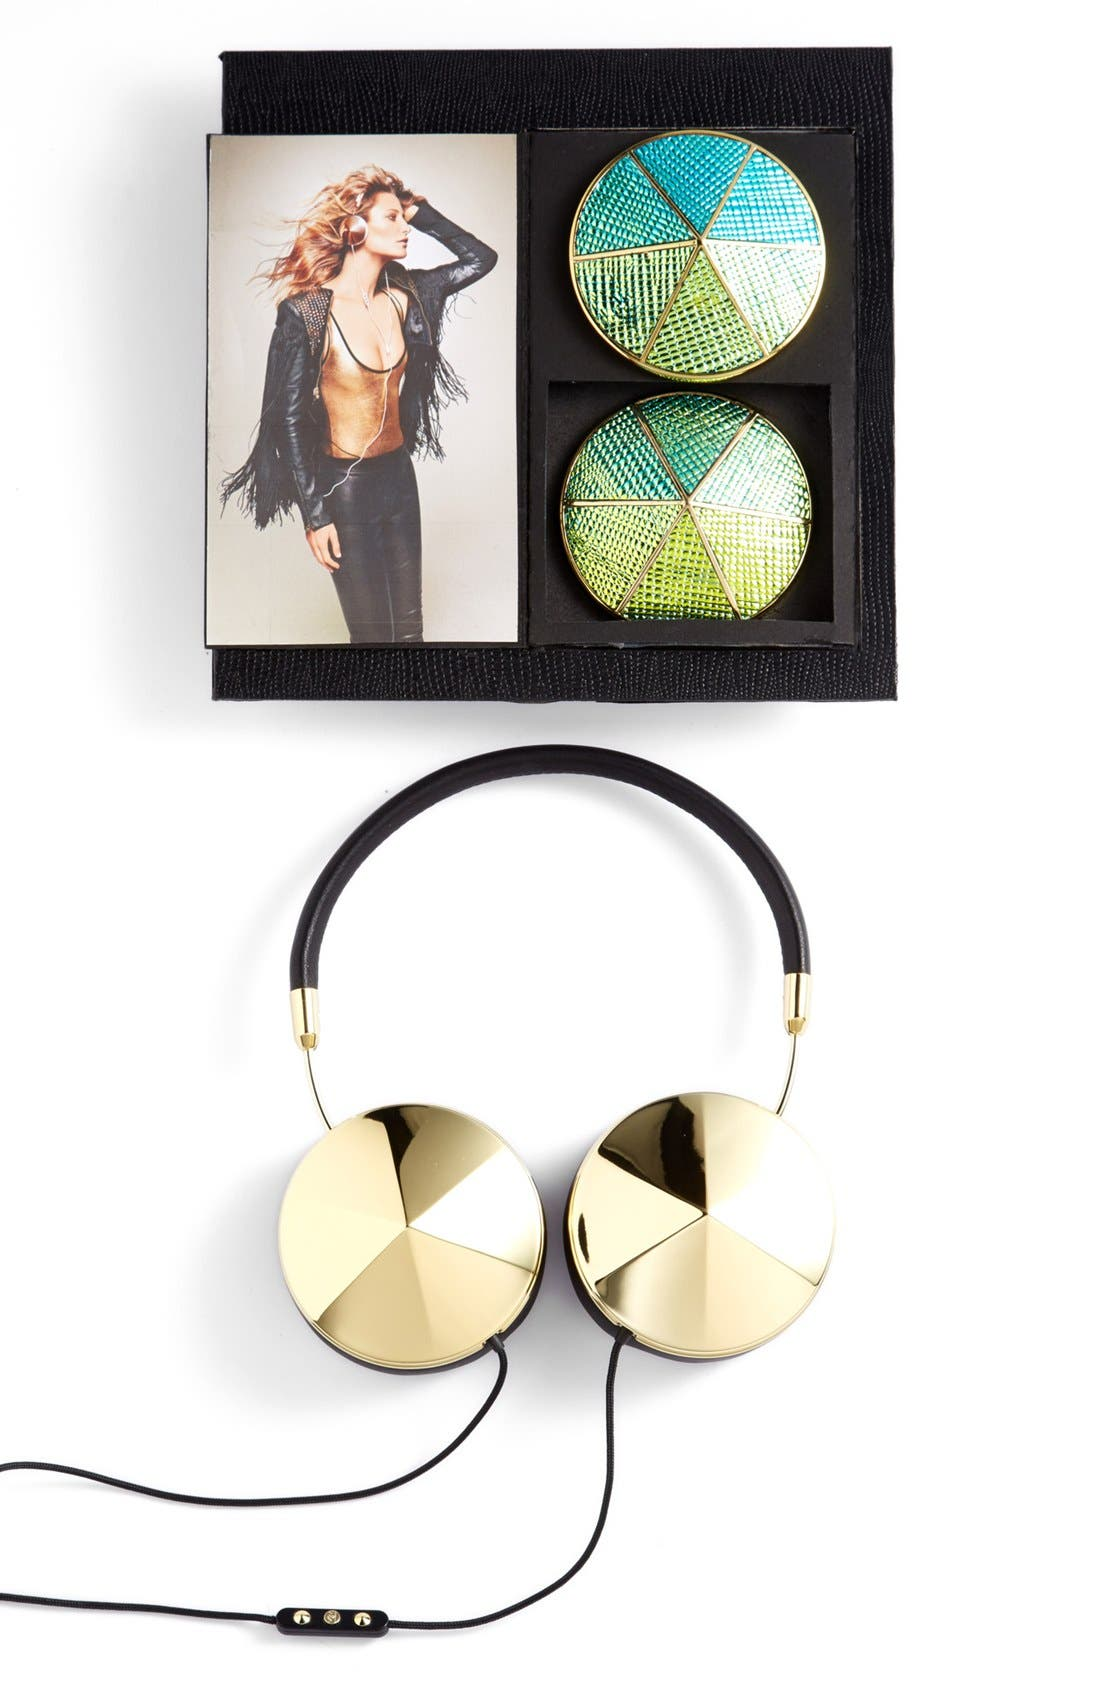 Alternate Image 1 Selected - Frends 'Taylor - Rebecca Minkoff' Headphones